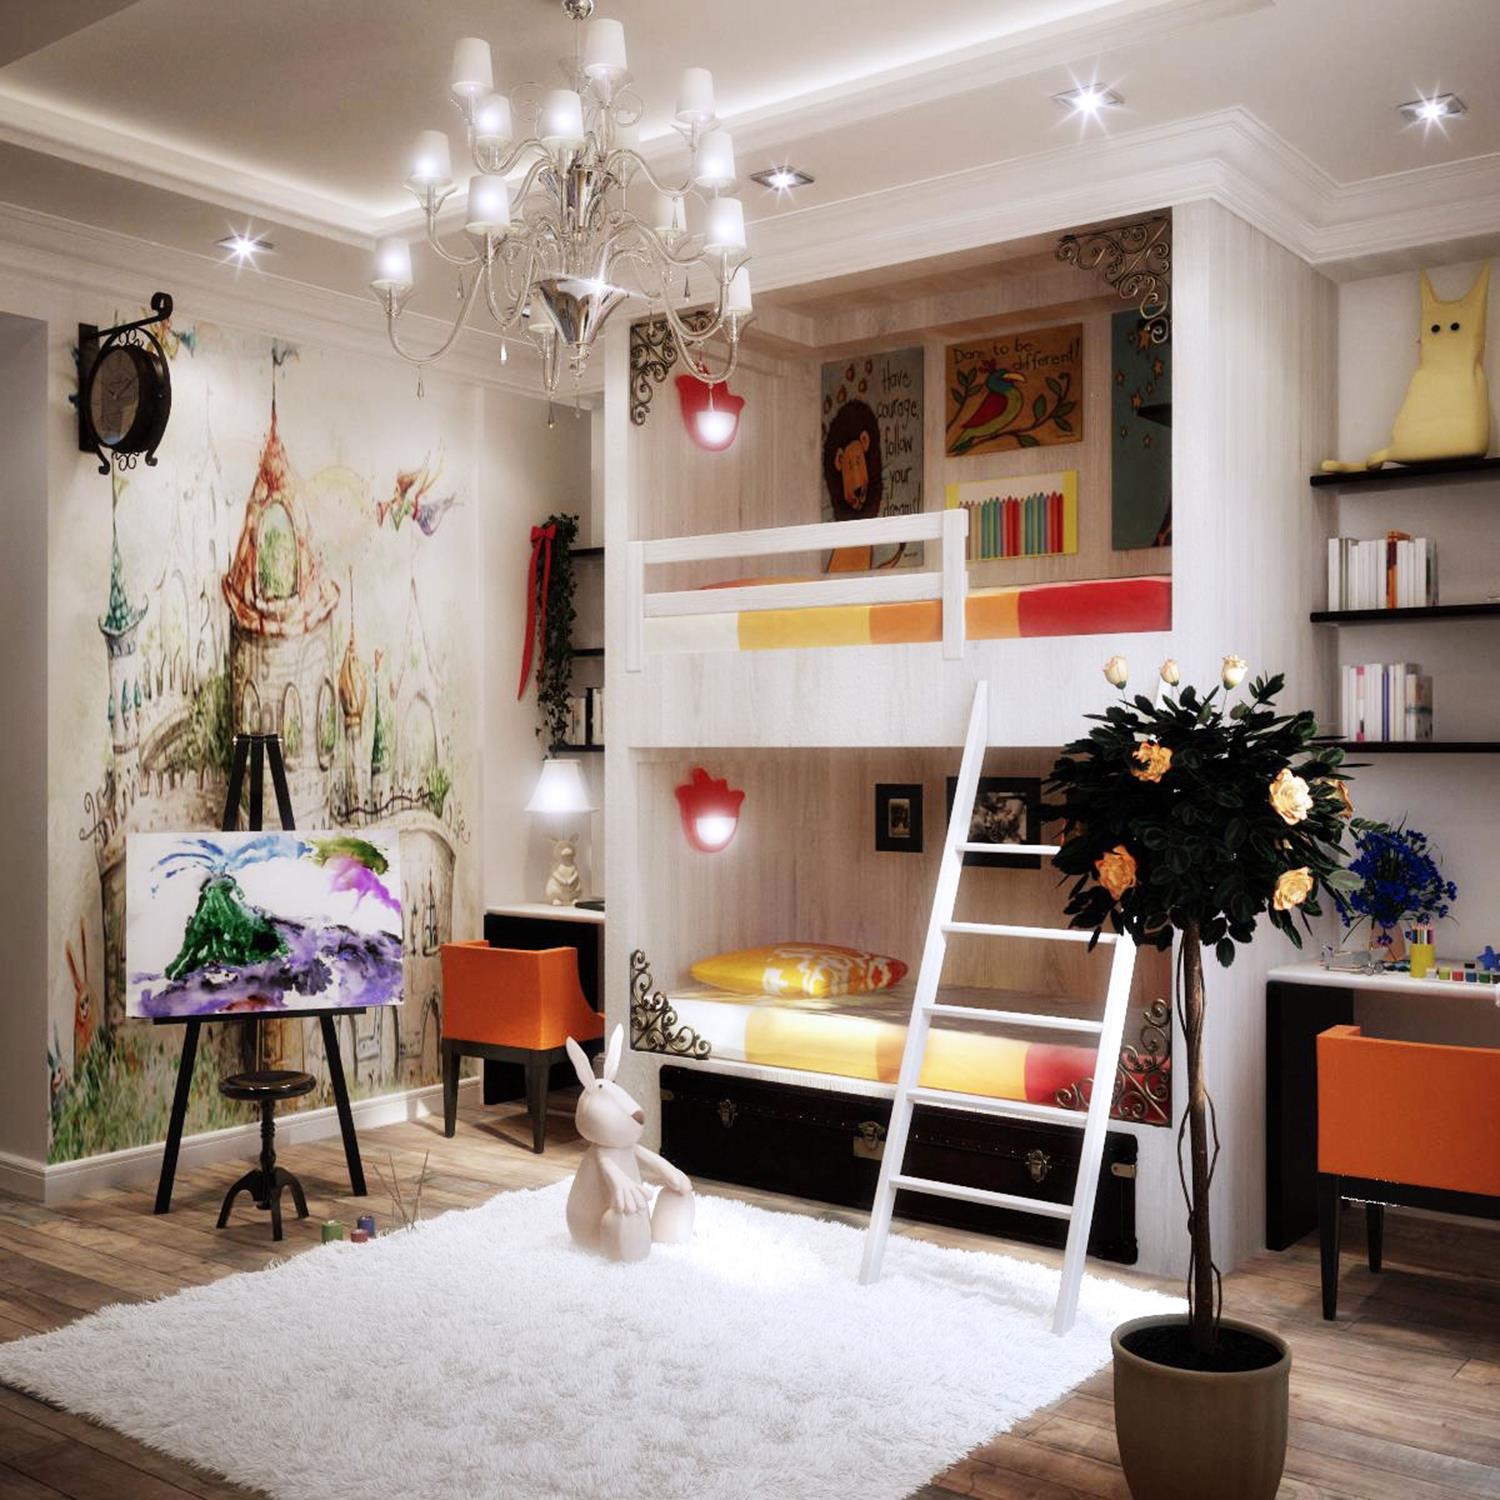 Color Full Kids Room Decorating Ideas On A Budget 36